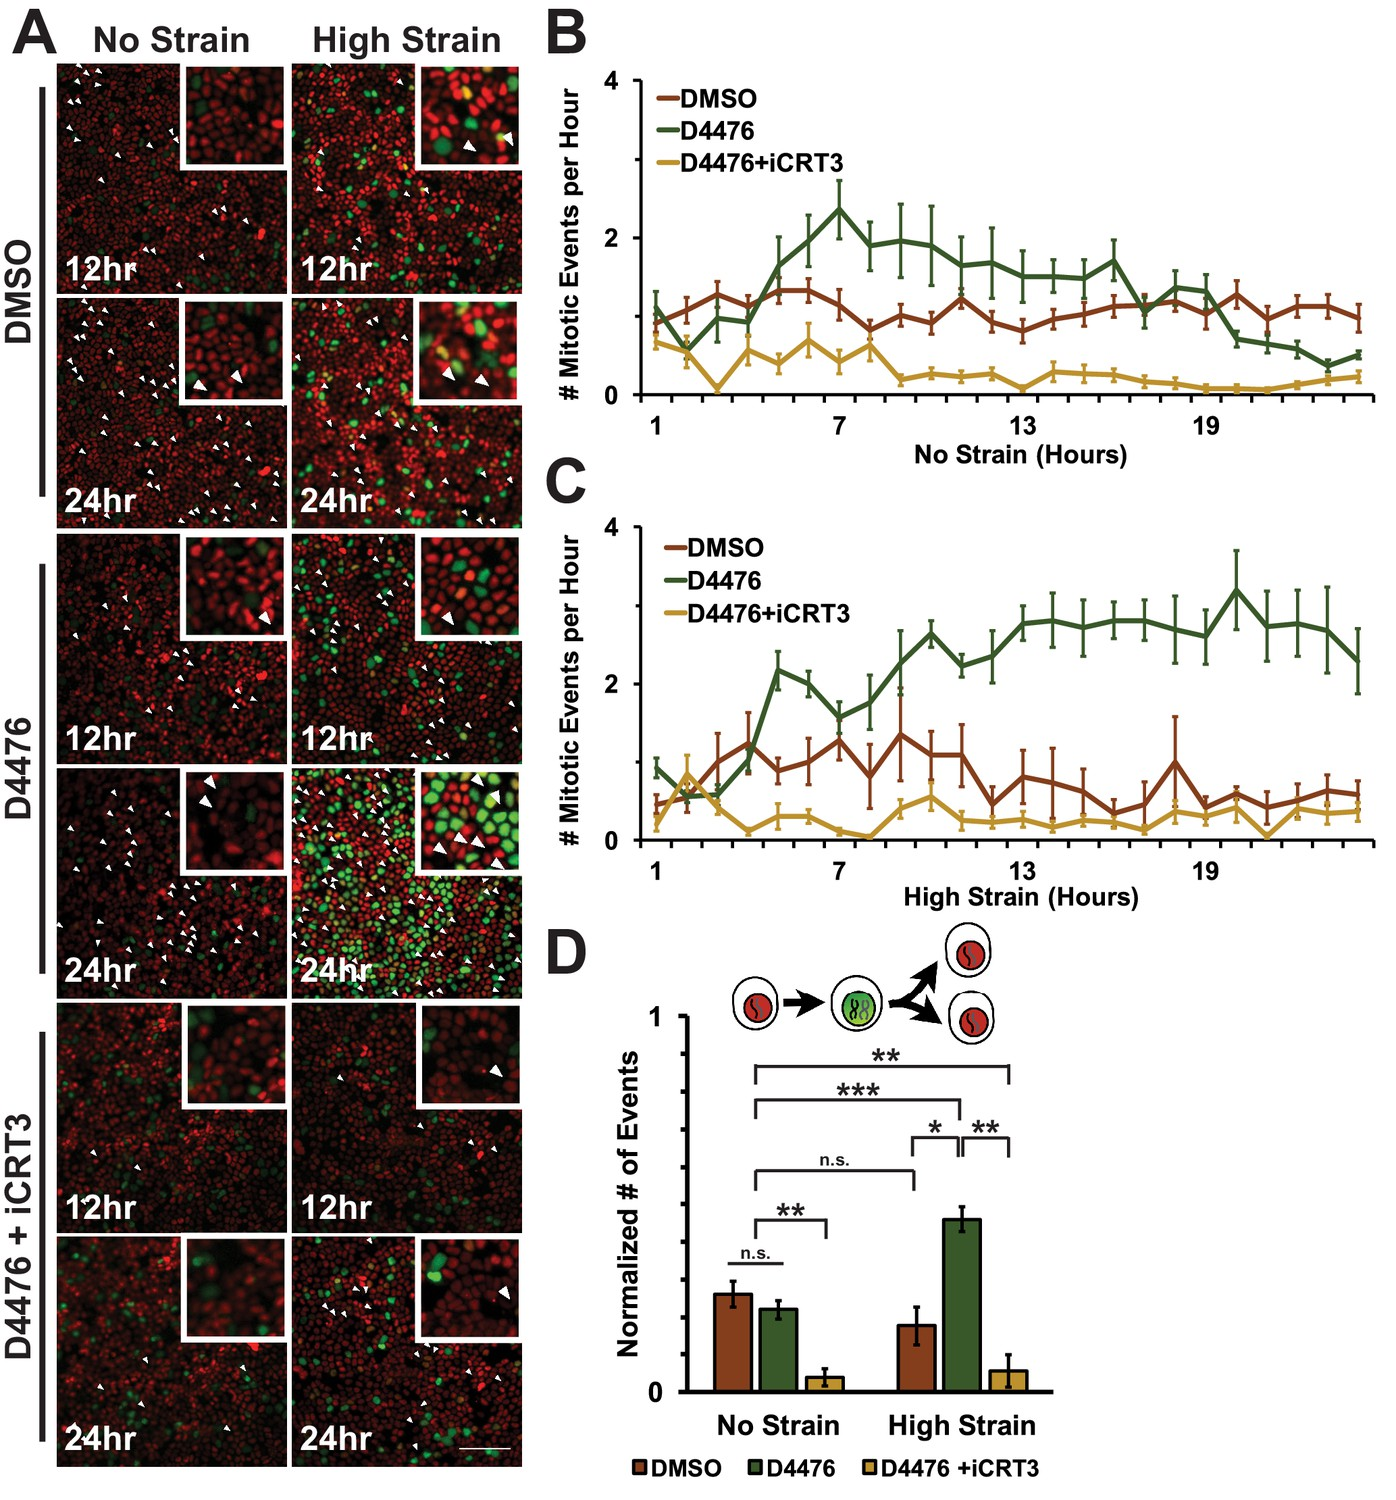 Increasing Catenin Wnt3a Activity Levels Drive Mechanical Strain Induced Cell Cycle